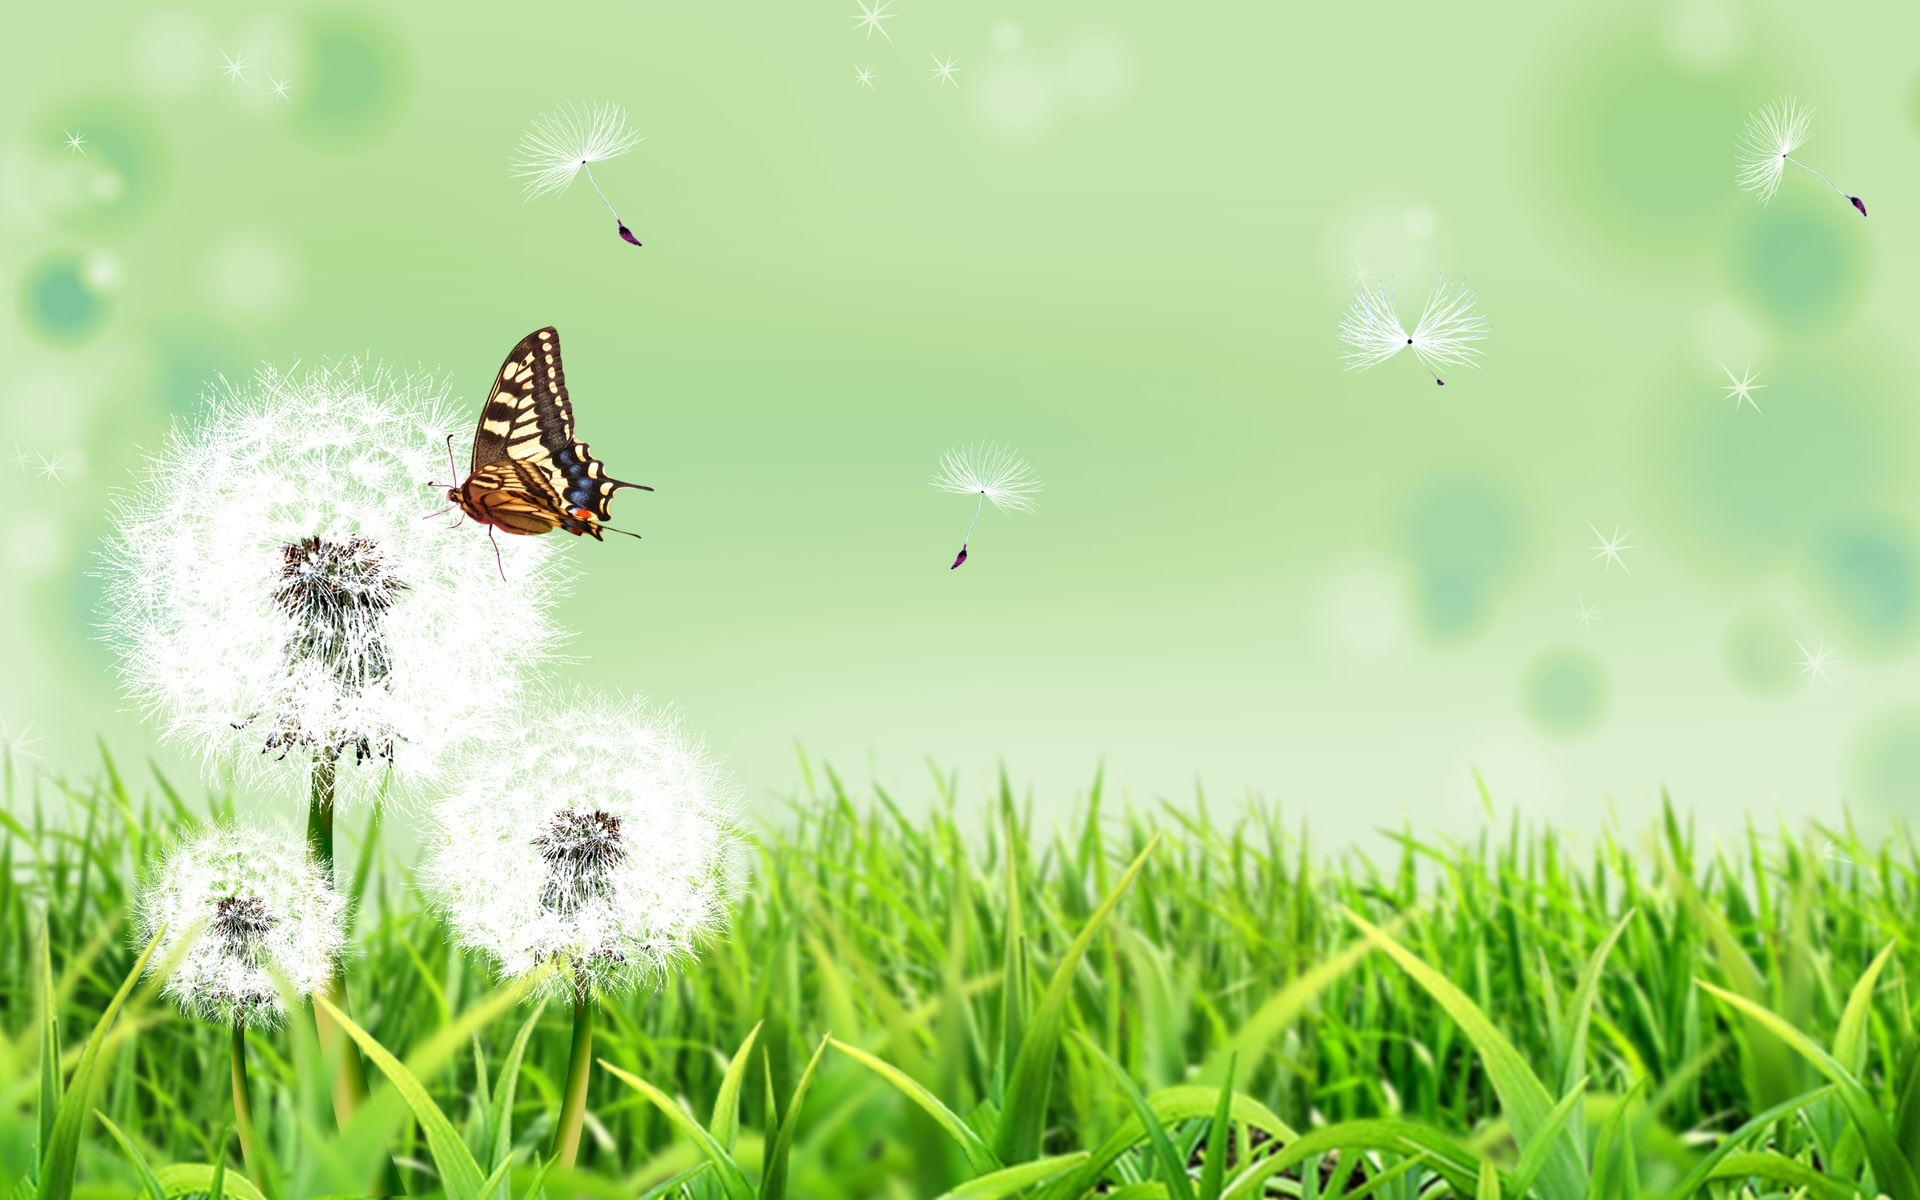 Wallpaper download pic - Butterfly Nature